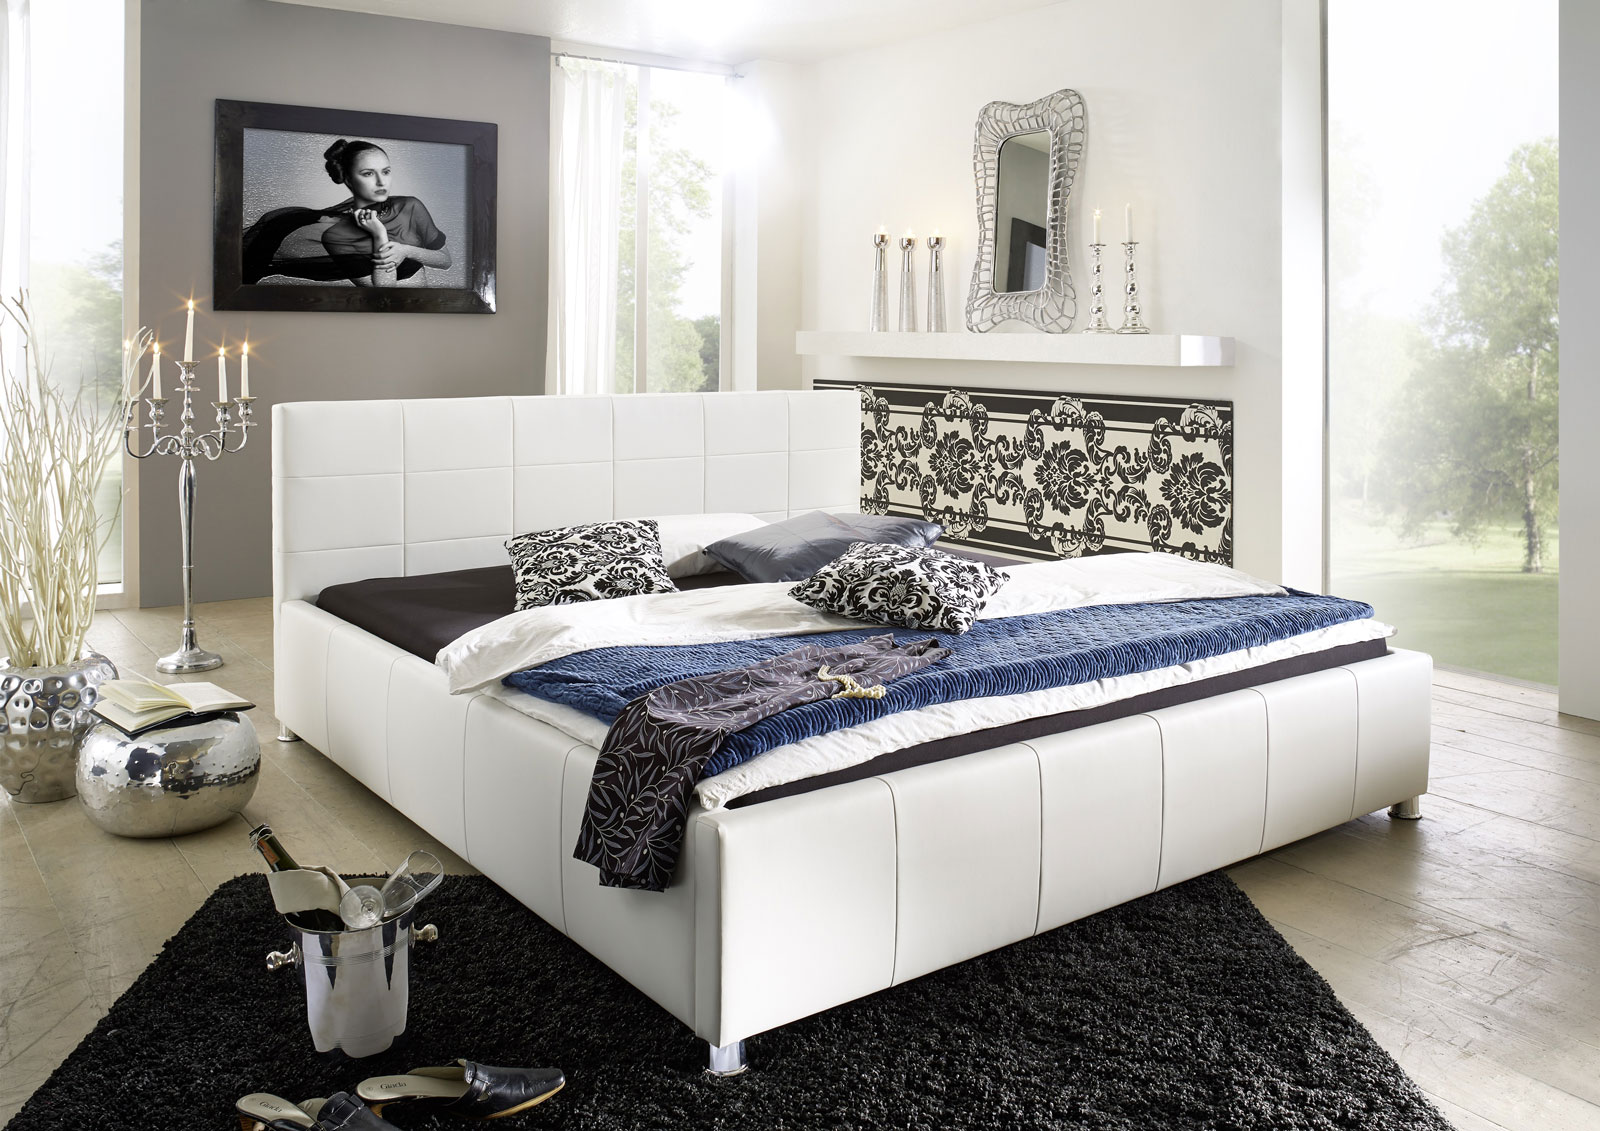 sam design bett 180 x 200 cm wei kira g nstig. Black Bedroom Furniture Sets. Home Design Ideas